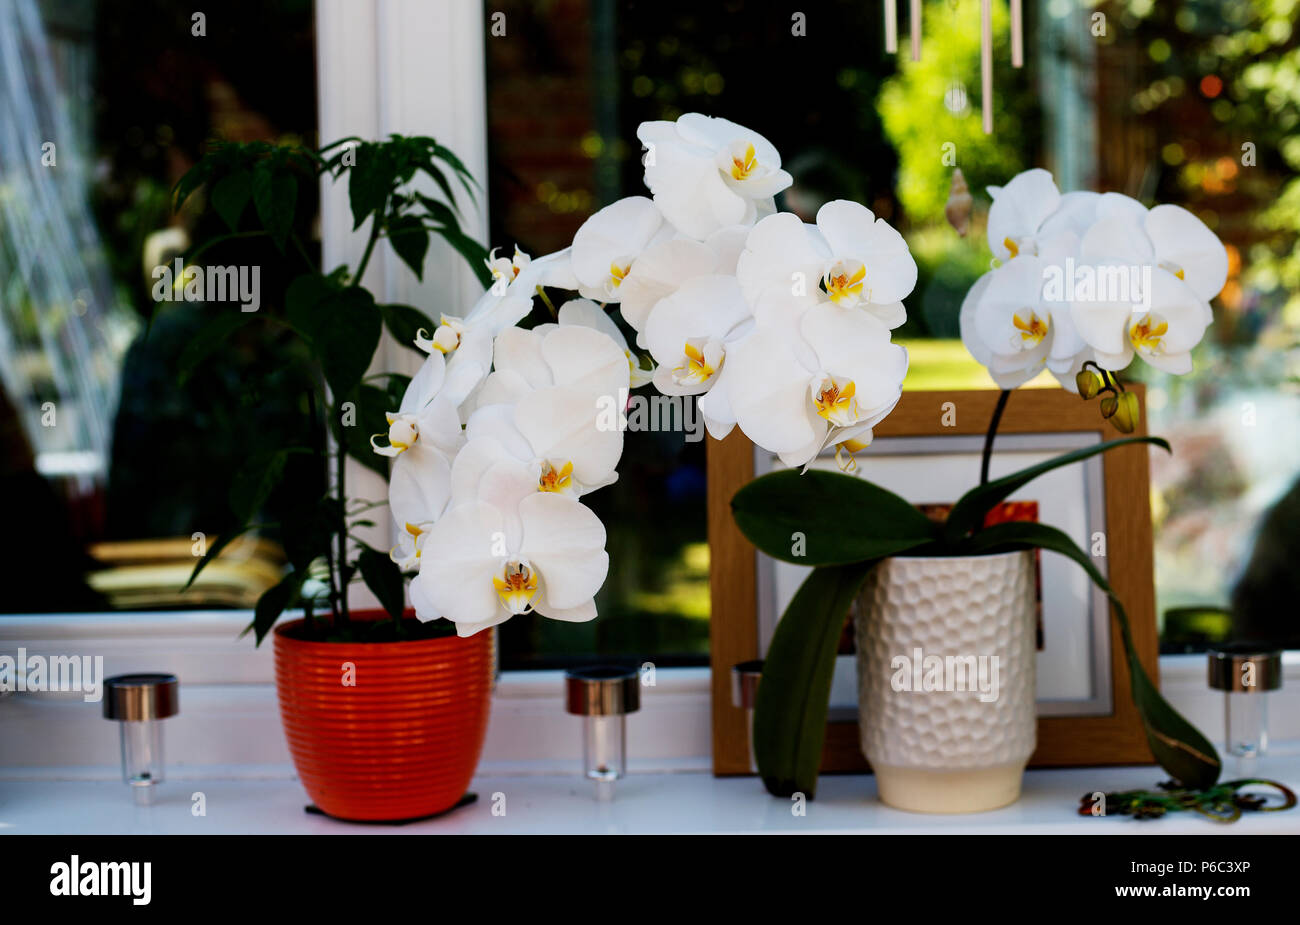 A white and yellow orchid (Phalaenopsis) growing from a white plant pot on a conservatory windowsill. - Stock Image